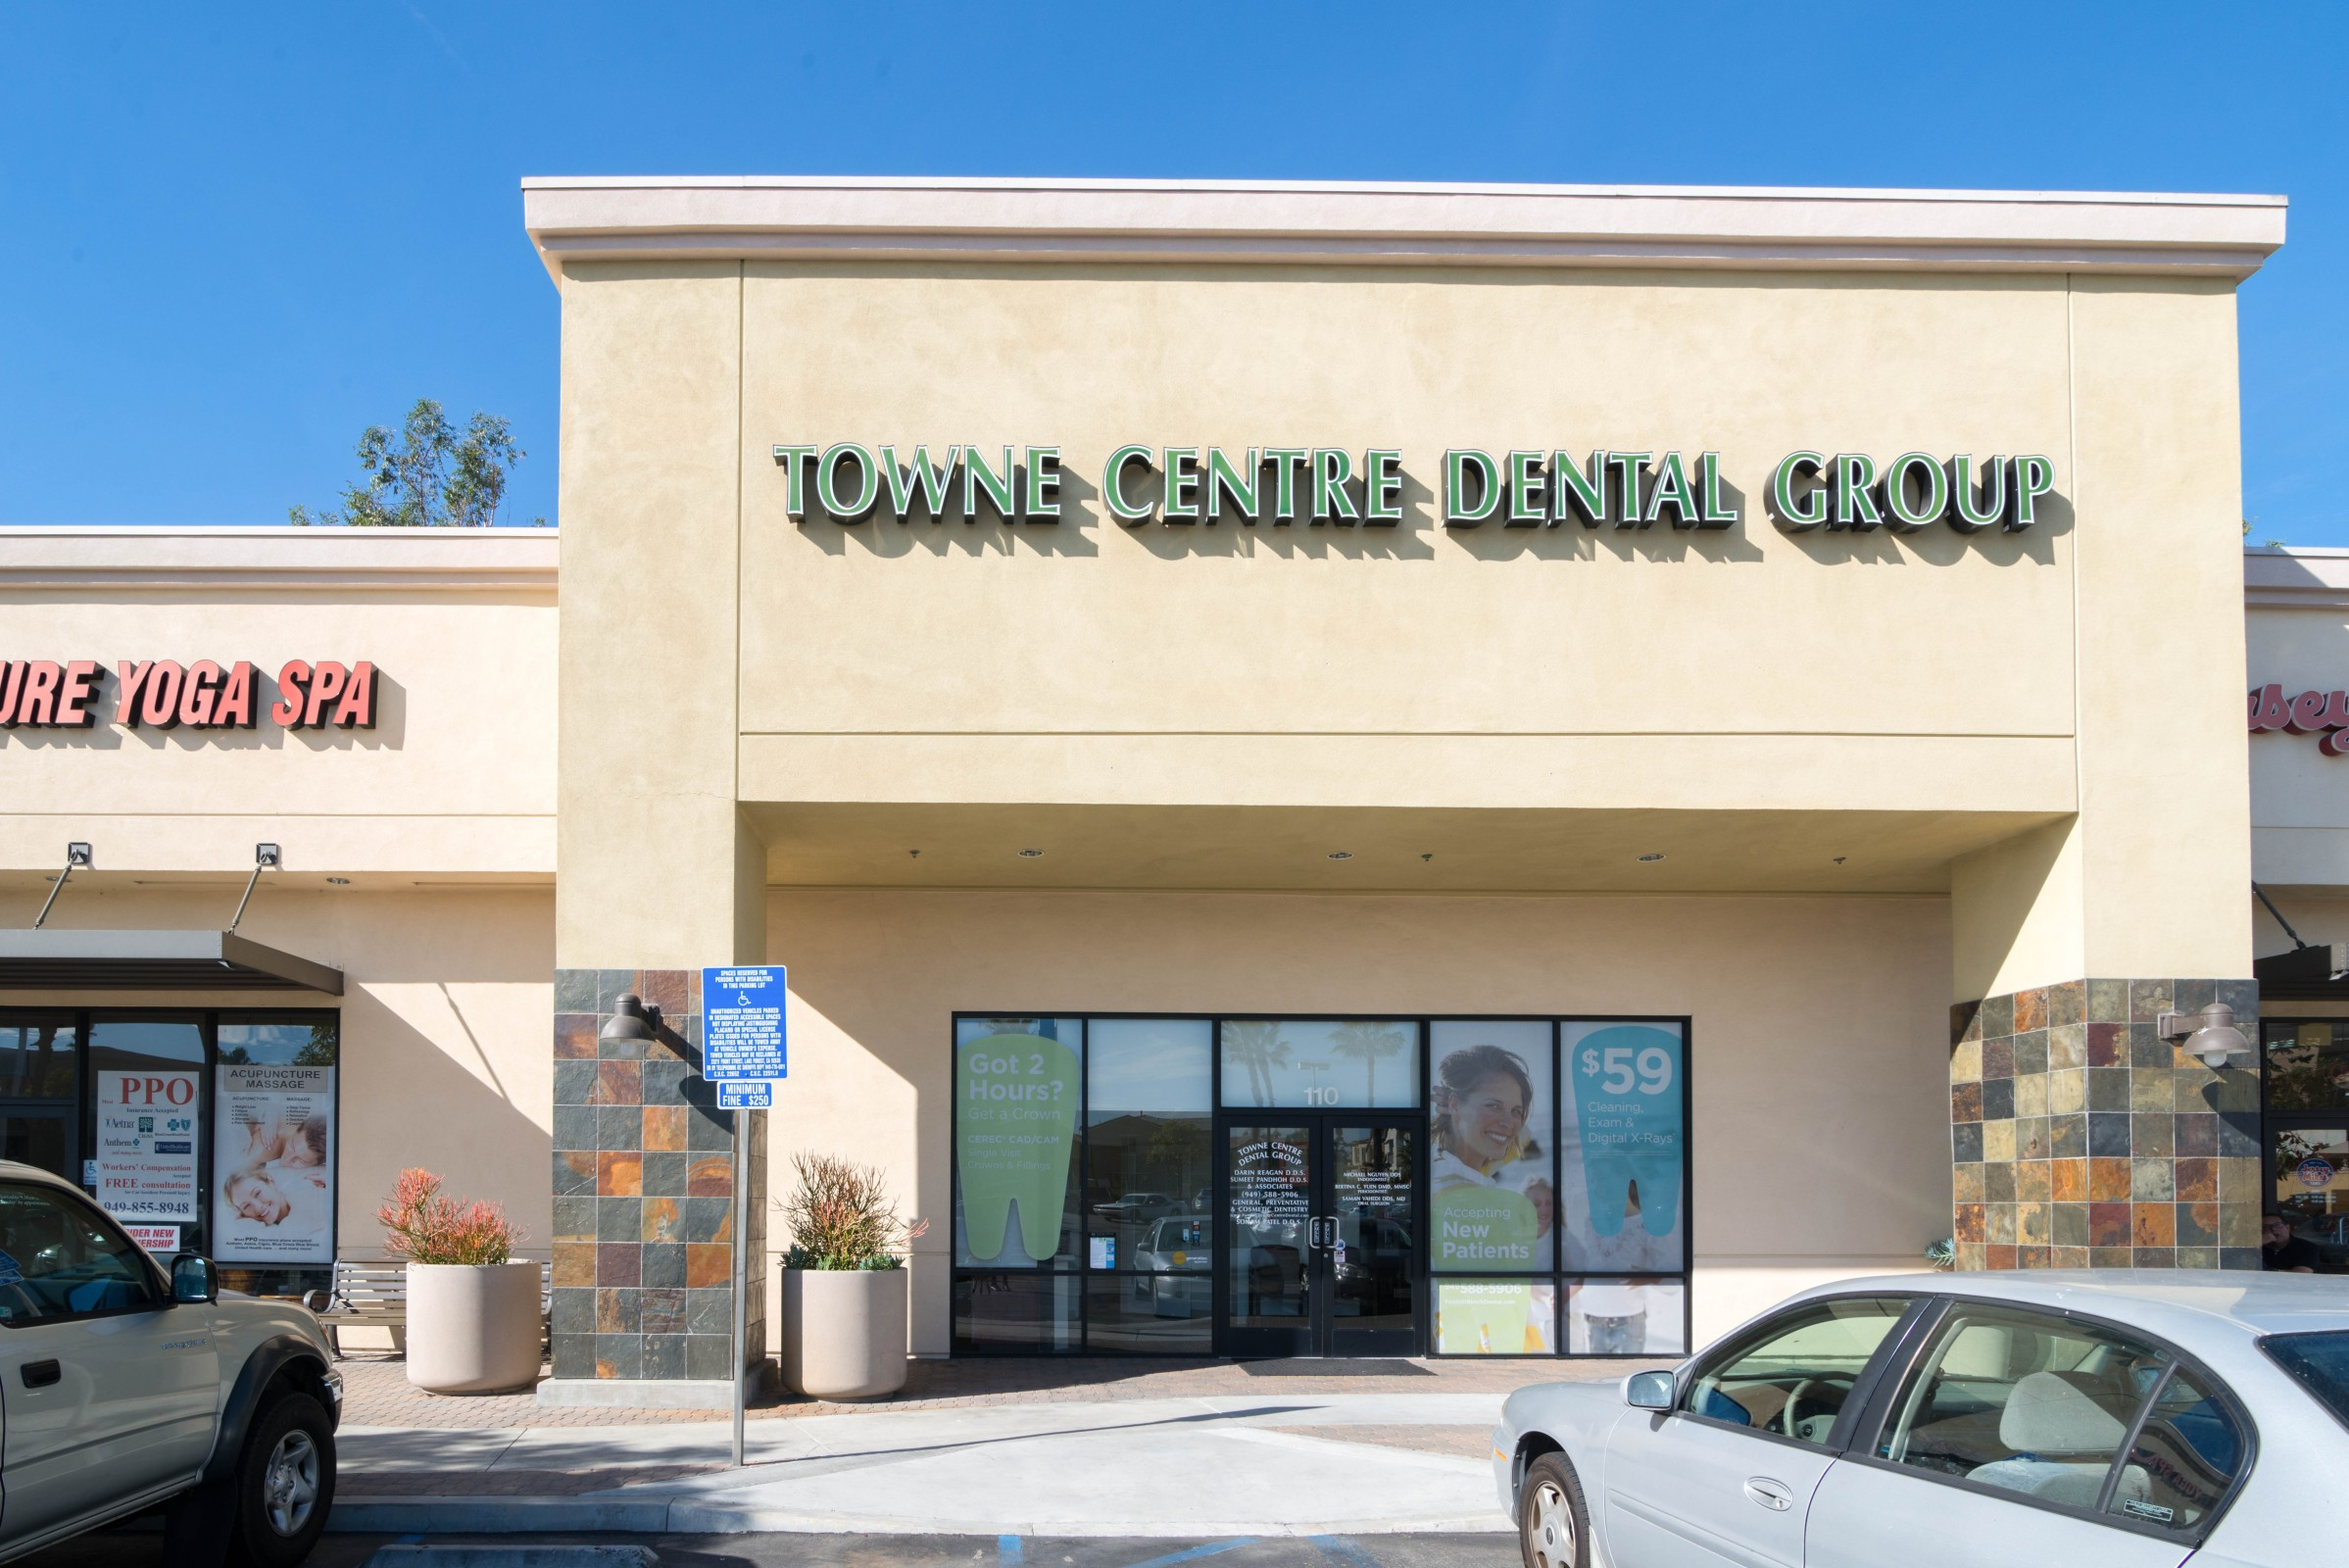 Towne centre dental group in foothill ranch ca 92610 for Mercedes benz foothill ranch service specials